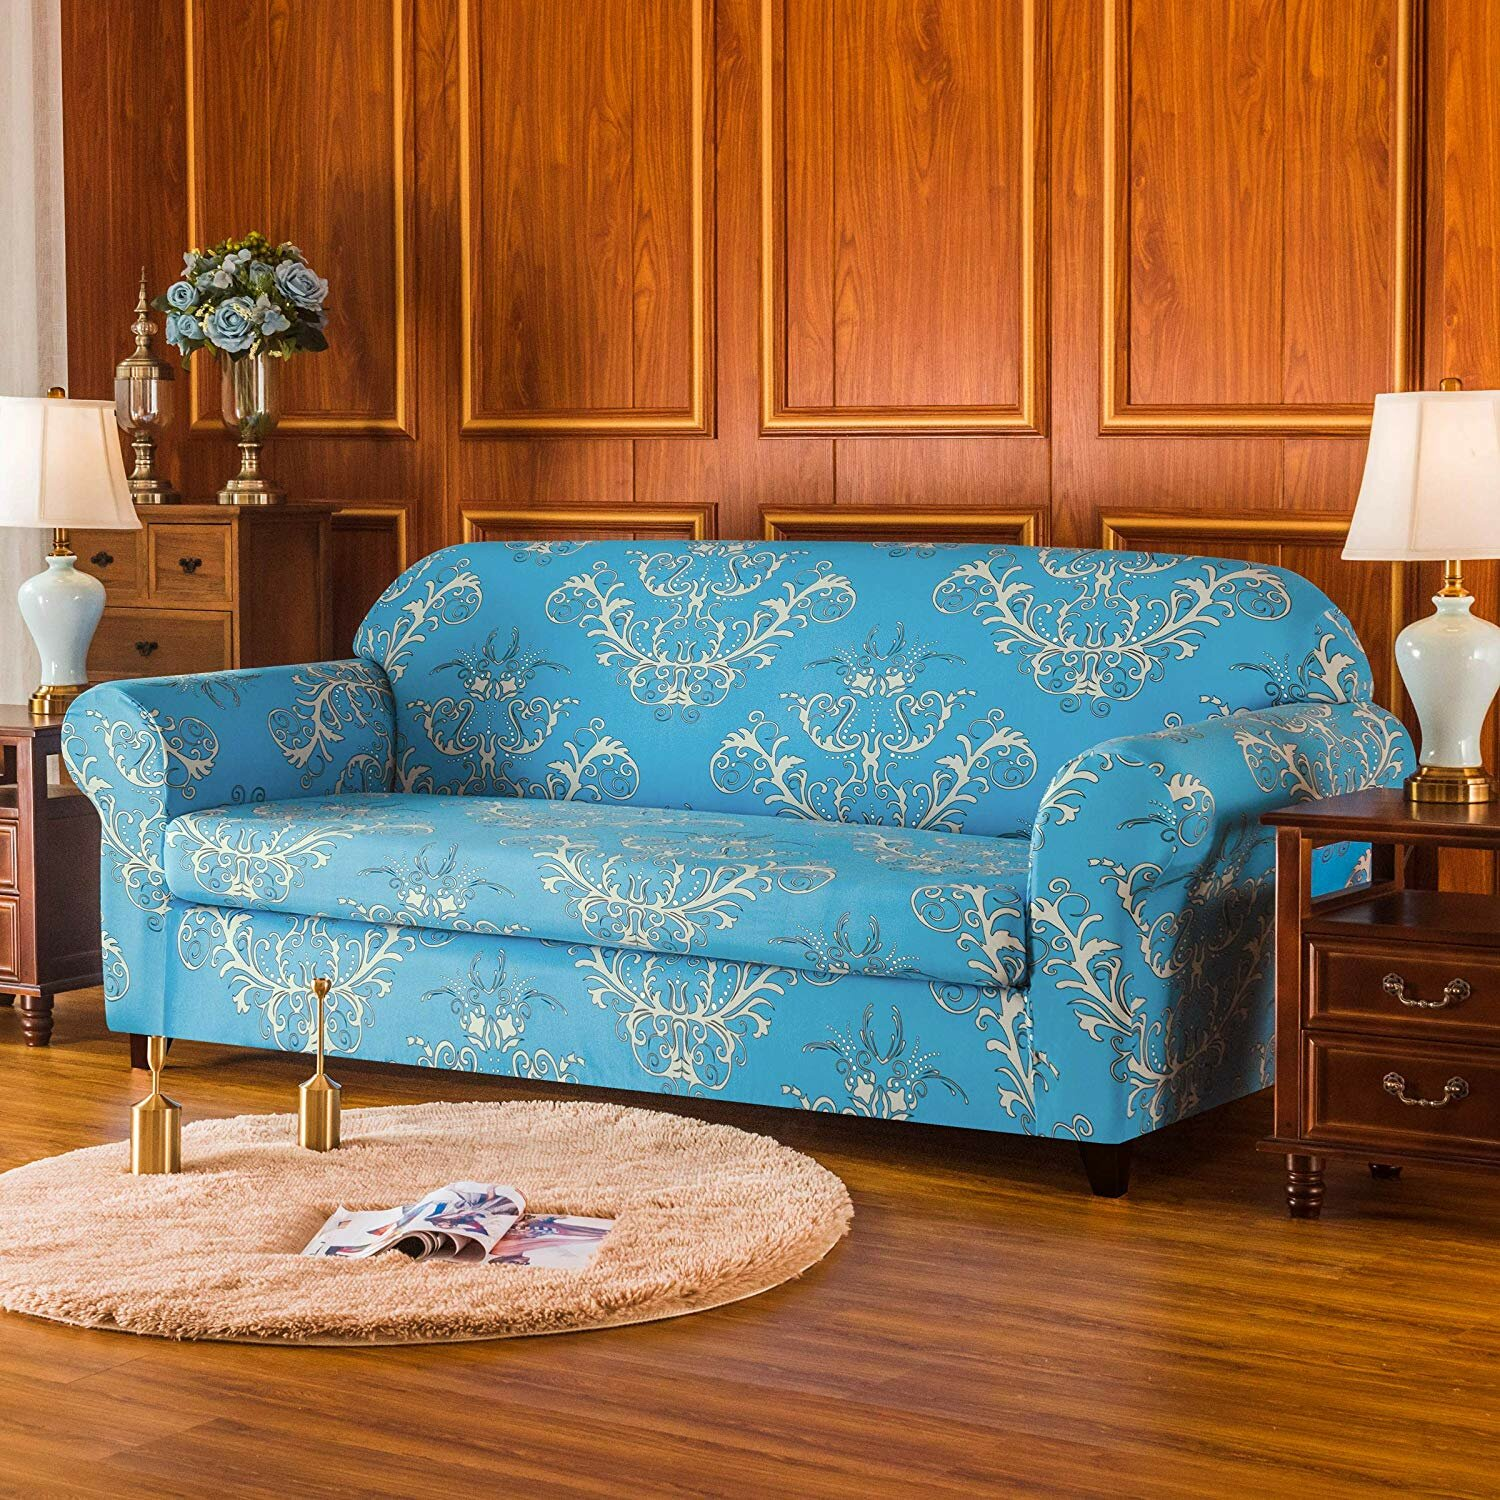 Remarkable Flower Printed Stretch Box Cushion Loveseat Slipcover Unemploymentrelief Wooden Chair Designs For Living Room Unemploymentrelieforg